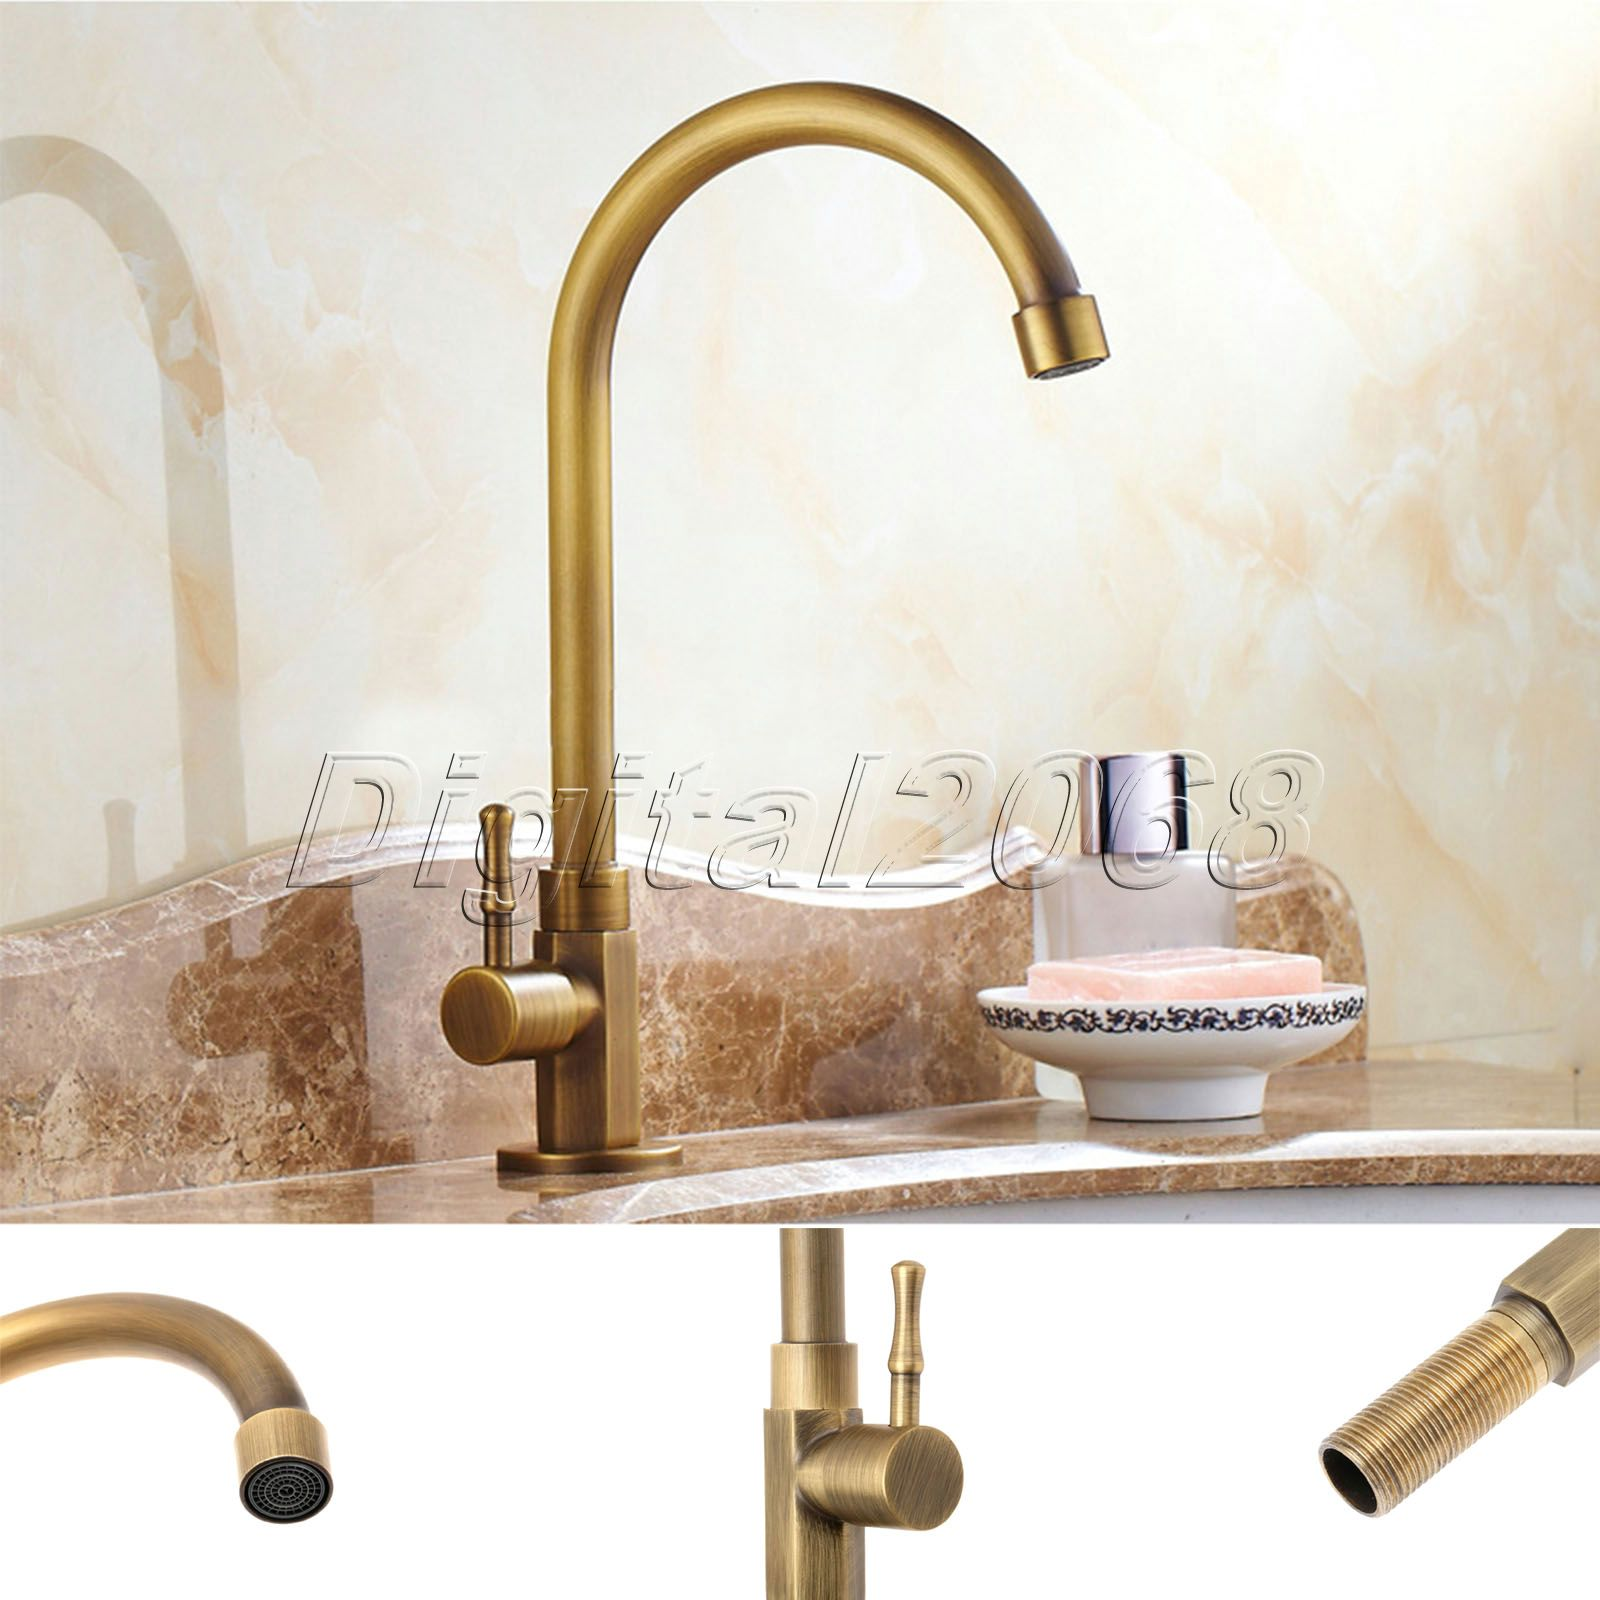 Brass Antique Luxury Bathroom Kitchen Sink Faucet Ceramic Valve Single Handle Swivel Spout Faucets Vessel Mixer Water Tap 55 free shipping high quality chrome brass kitchen faucet single handle sink mixer tap pull put sprayer swivel spout faucet